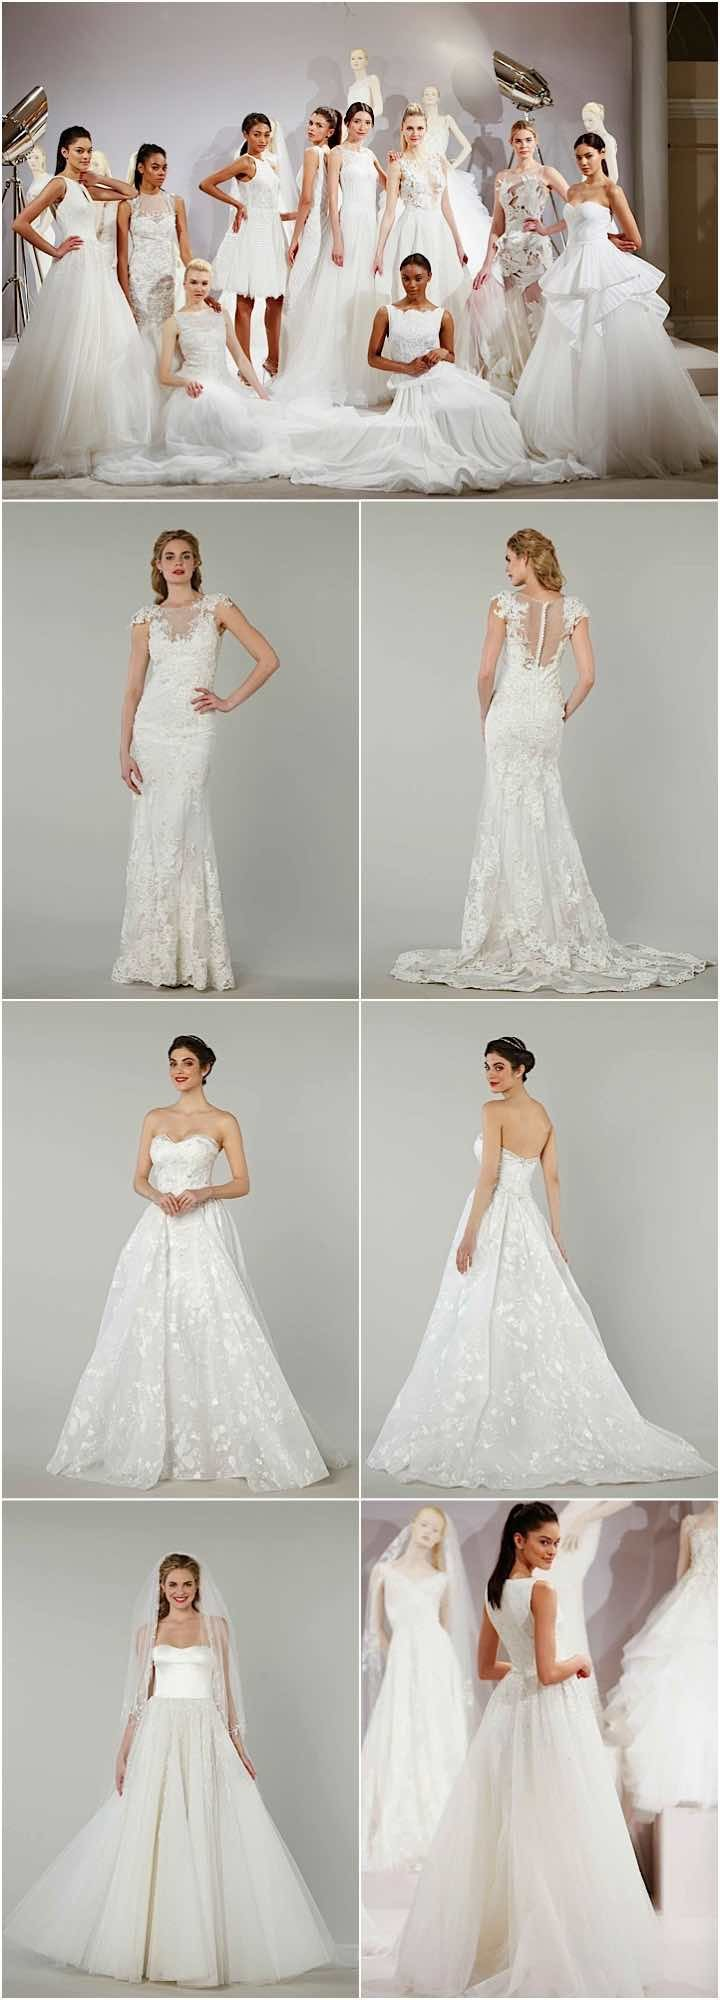 tony-ward-wedding-dresses-collage2-05012015nz